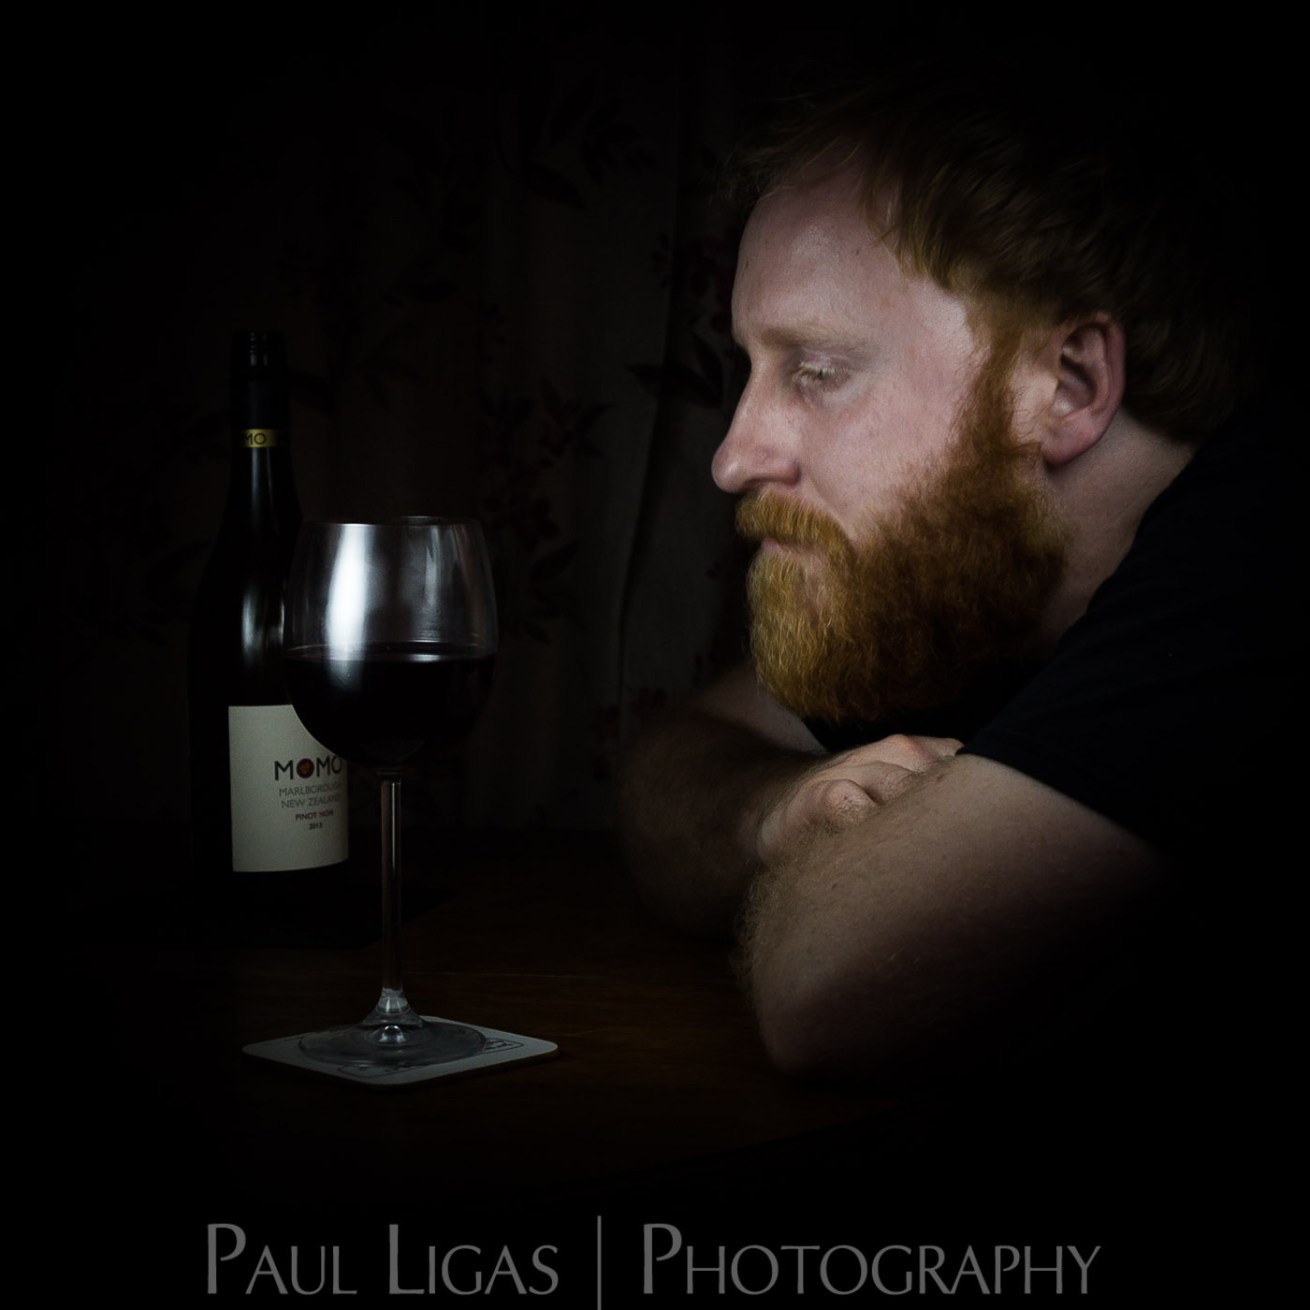 Light Painting Portrait photographer Herefordshire photography 6405